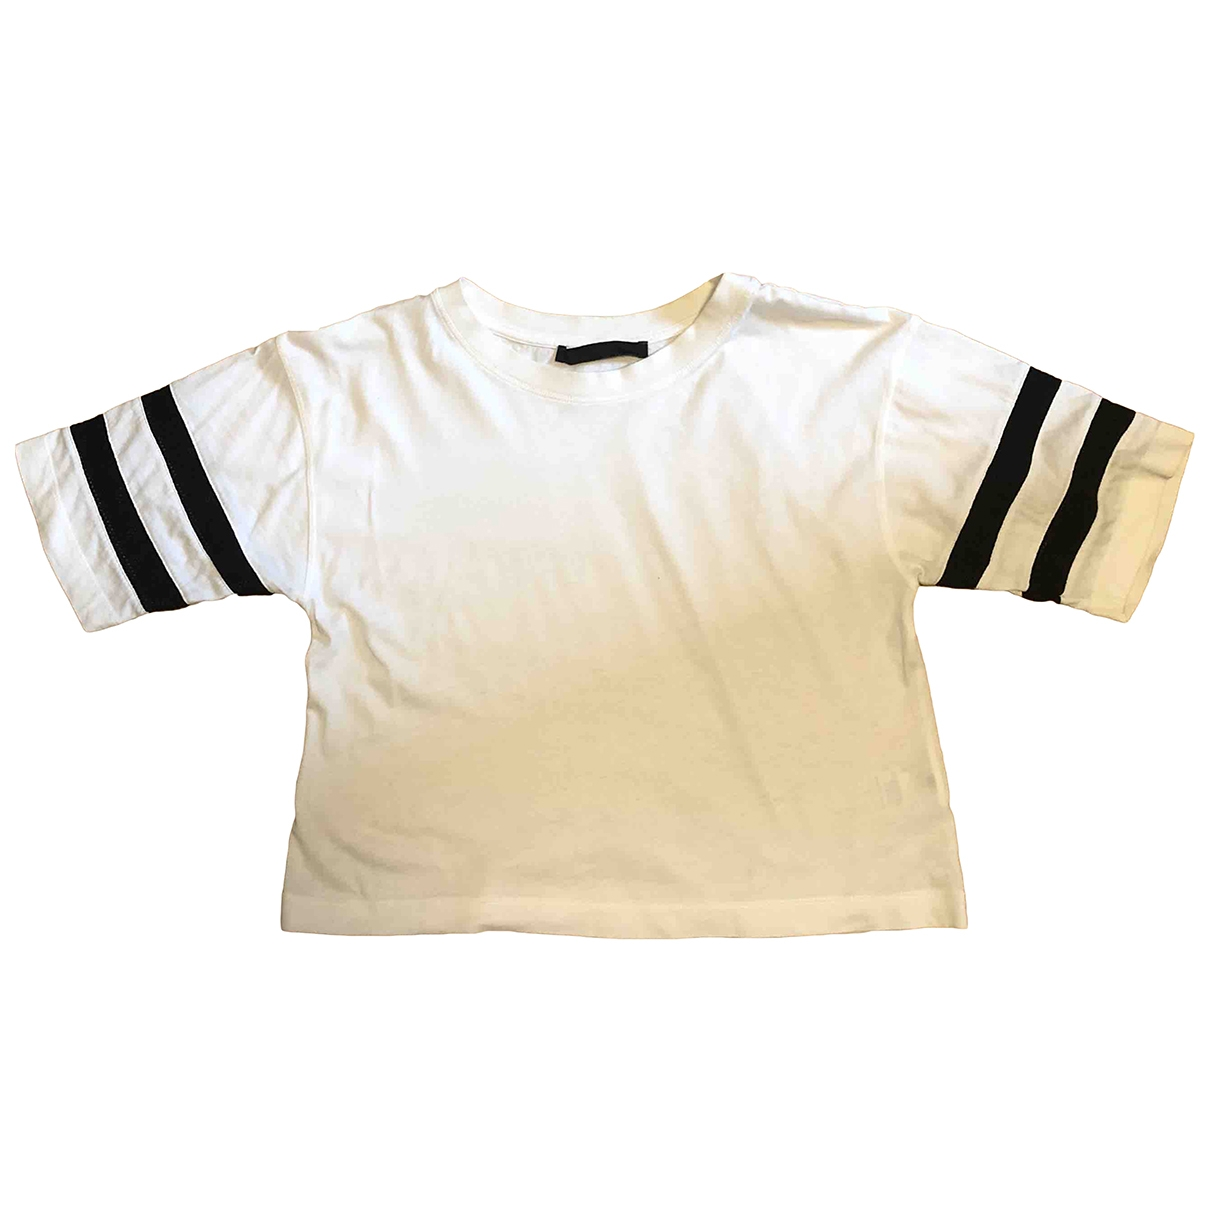 Karl Lagerfeld \N White Cotton  top for Women S International